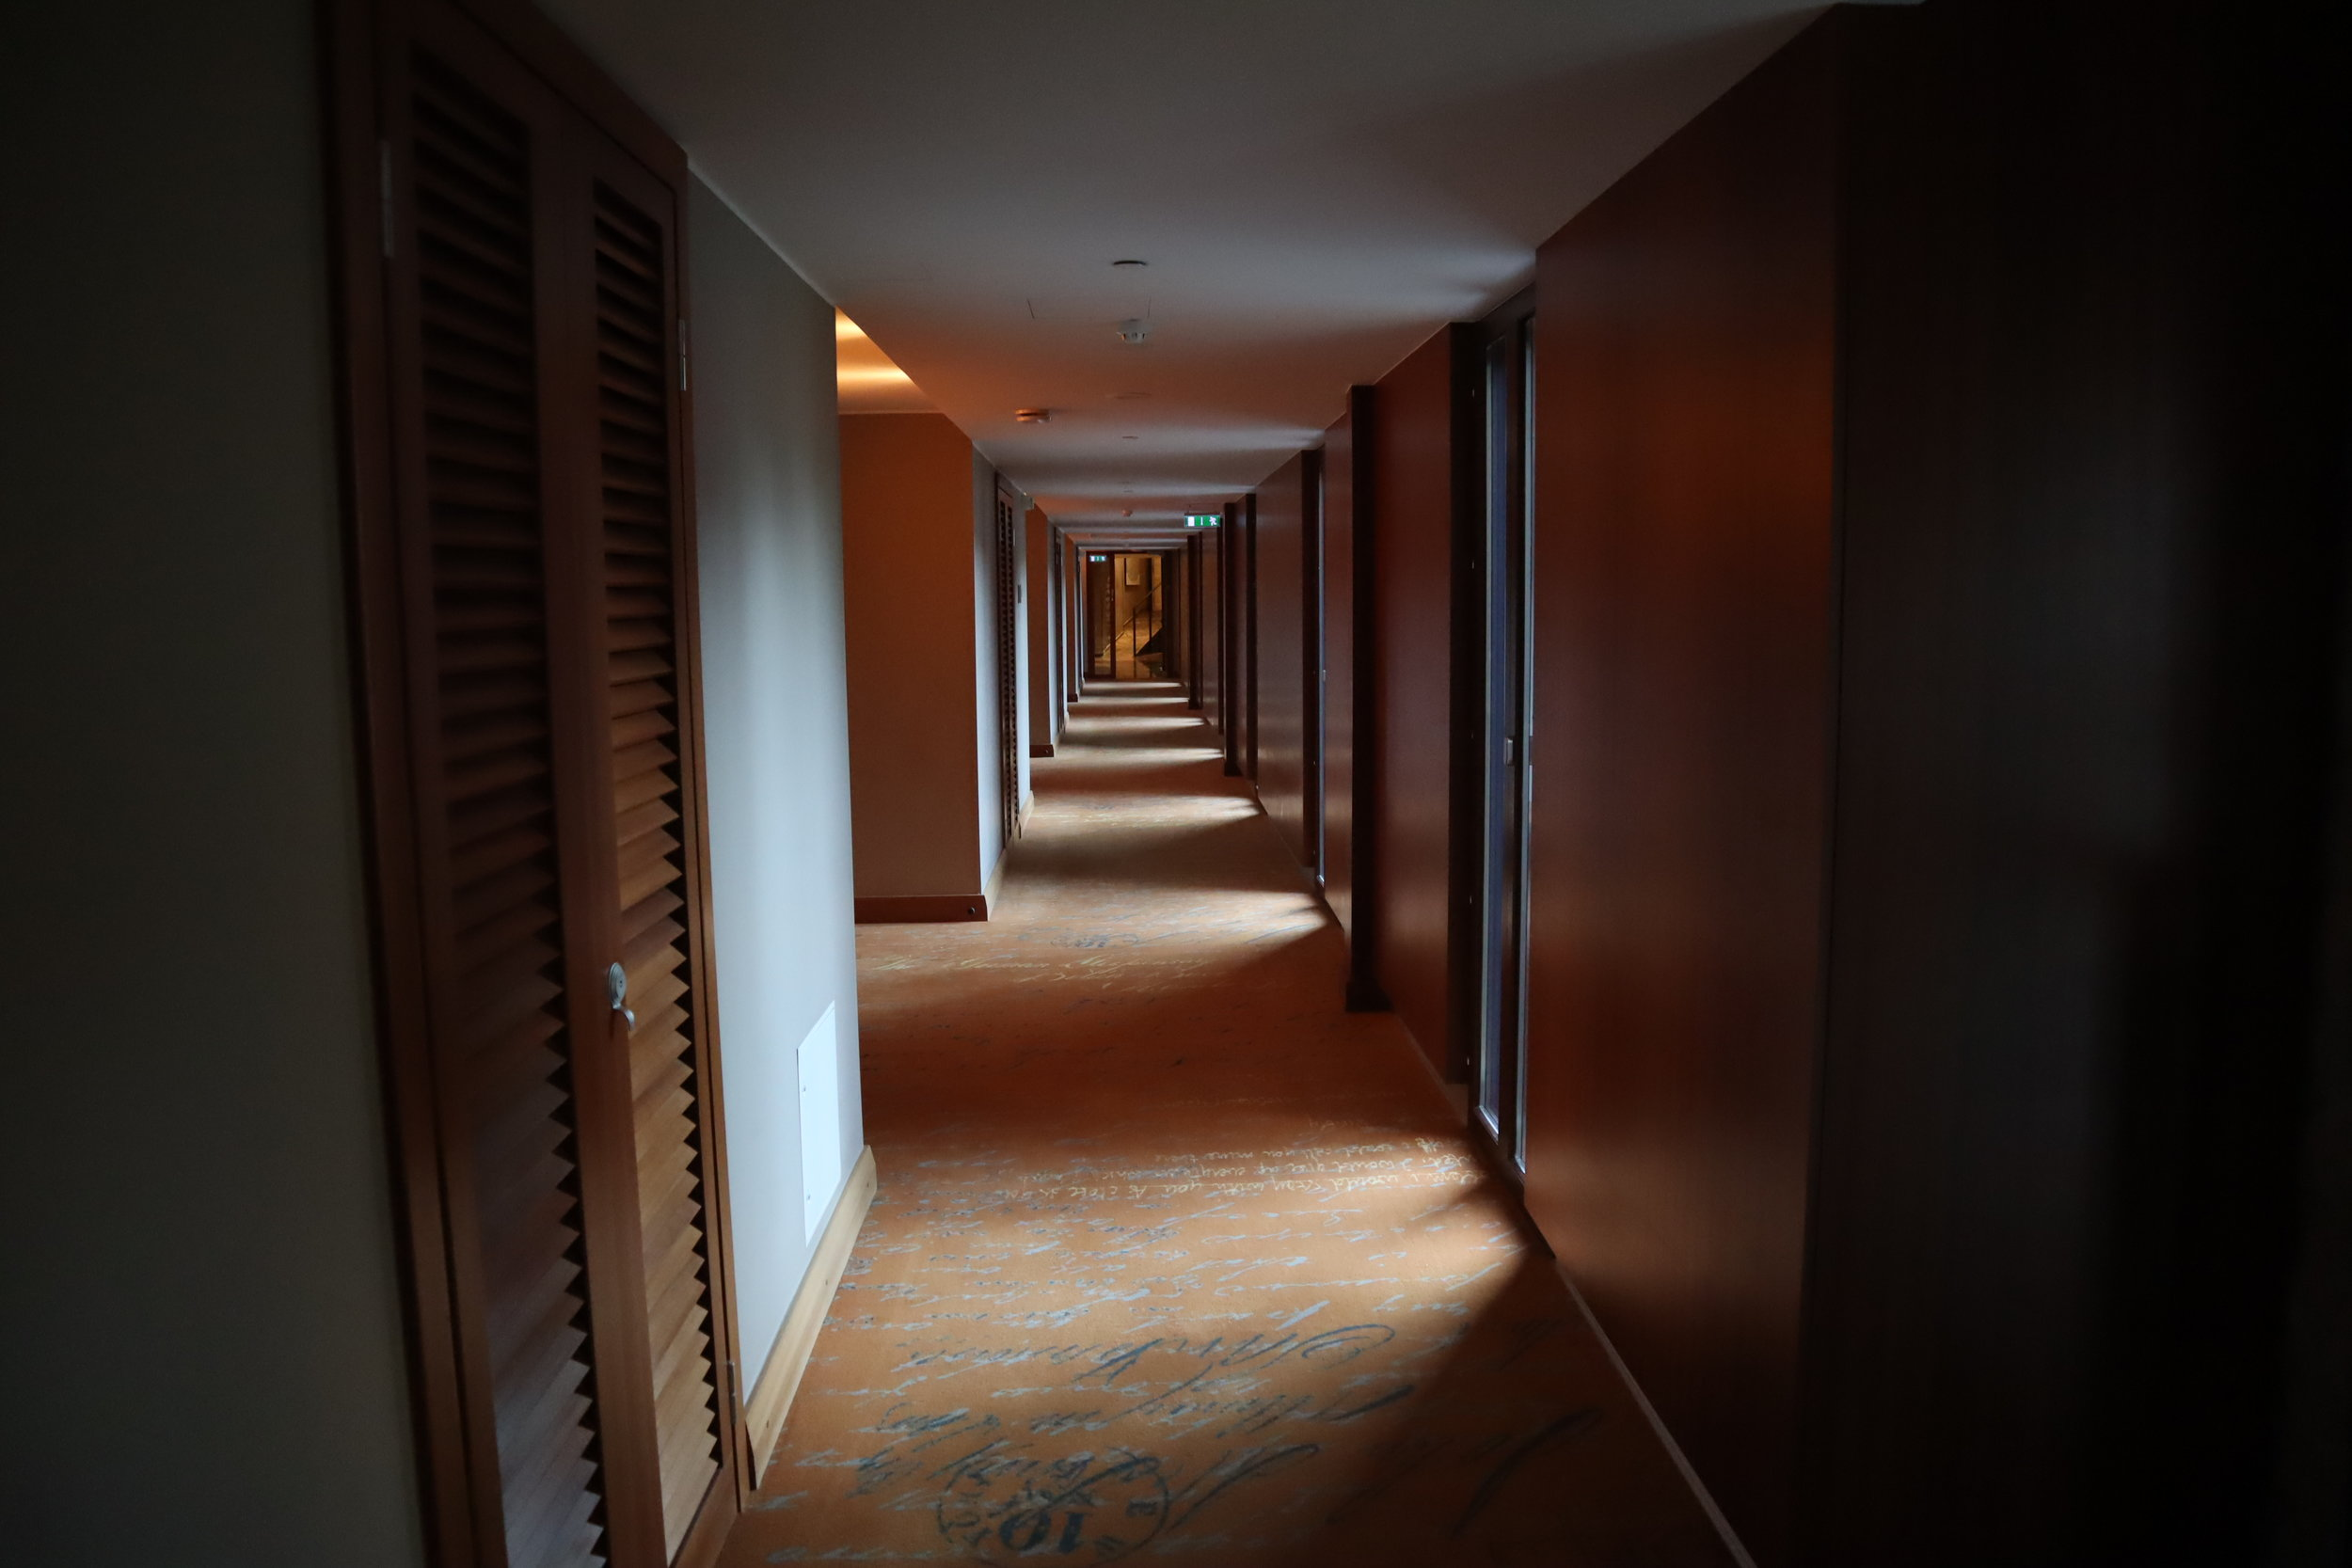 Hotel Telegraaf Tallinn – Executive wing hallway